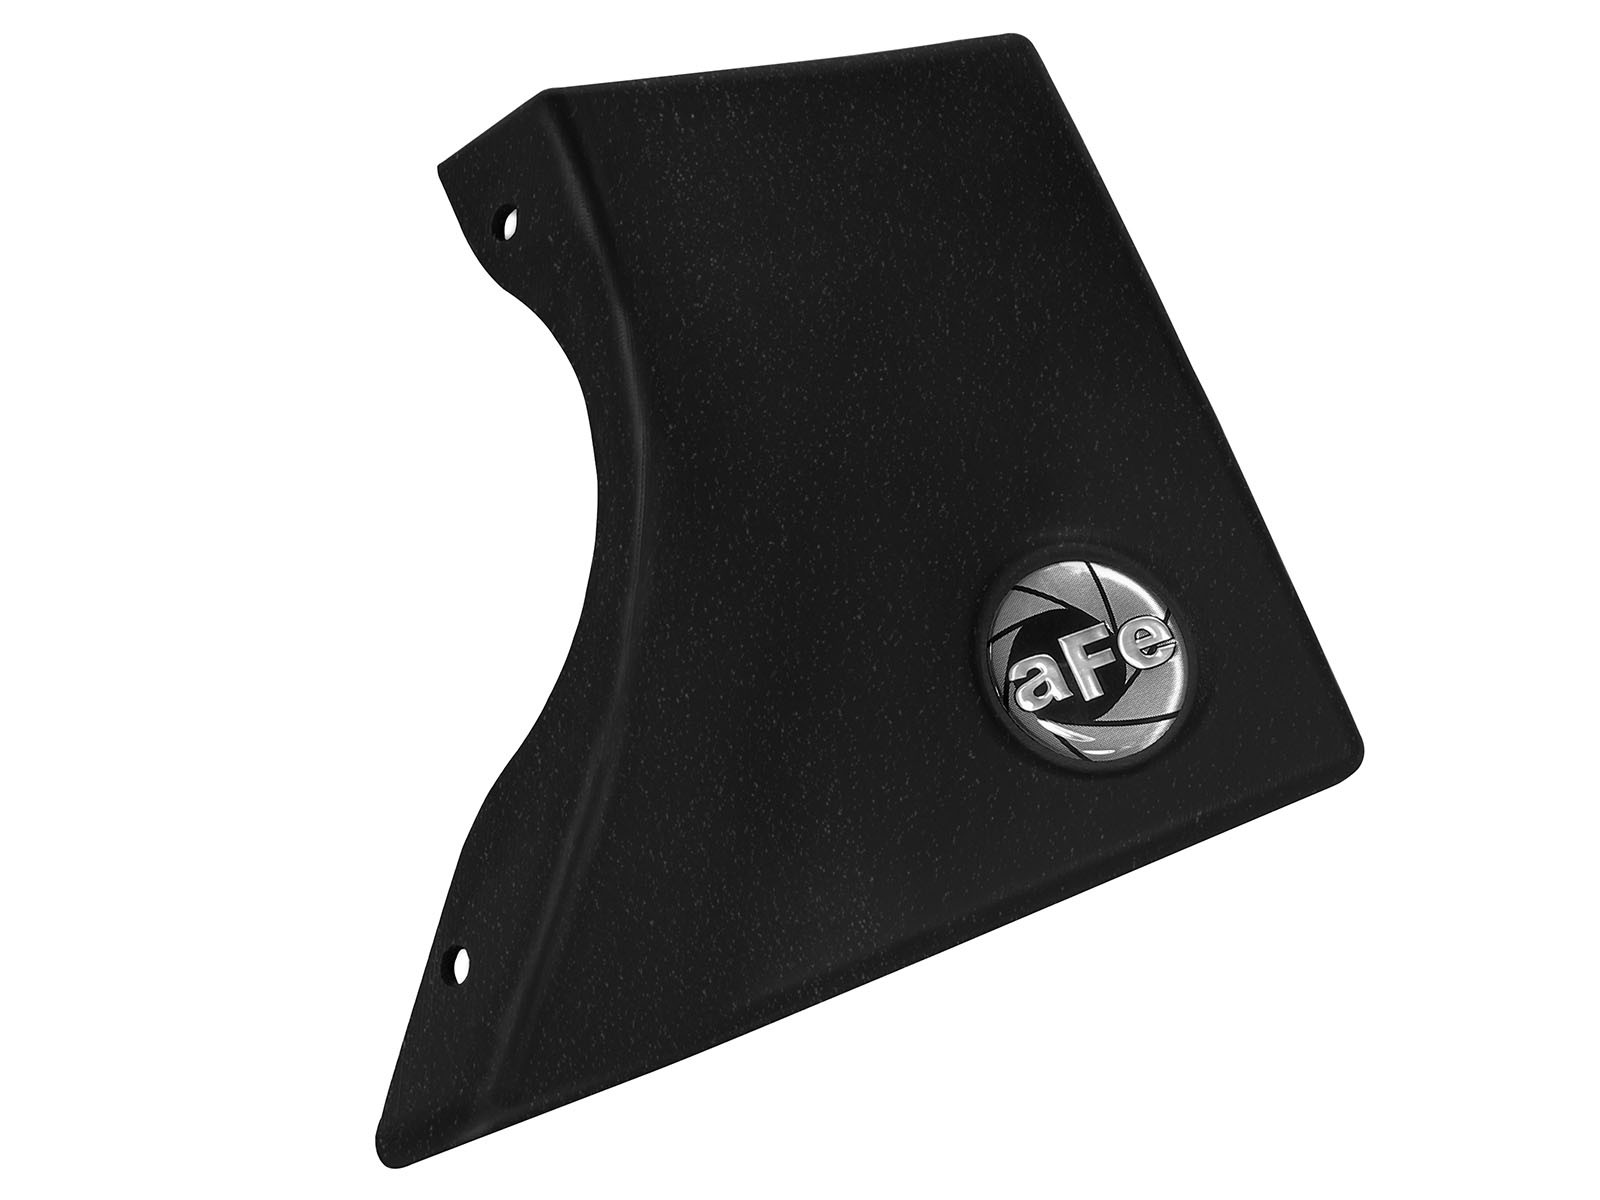 aFe POWER 54-12678-B Magnum FORCE Stage-2 Intake System Cover